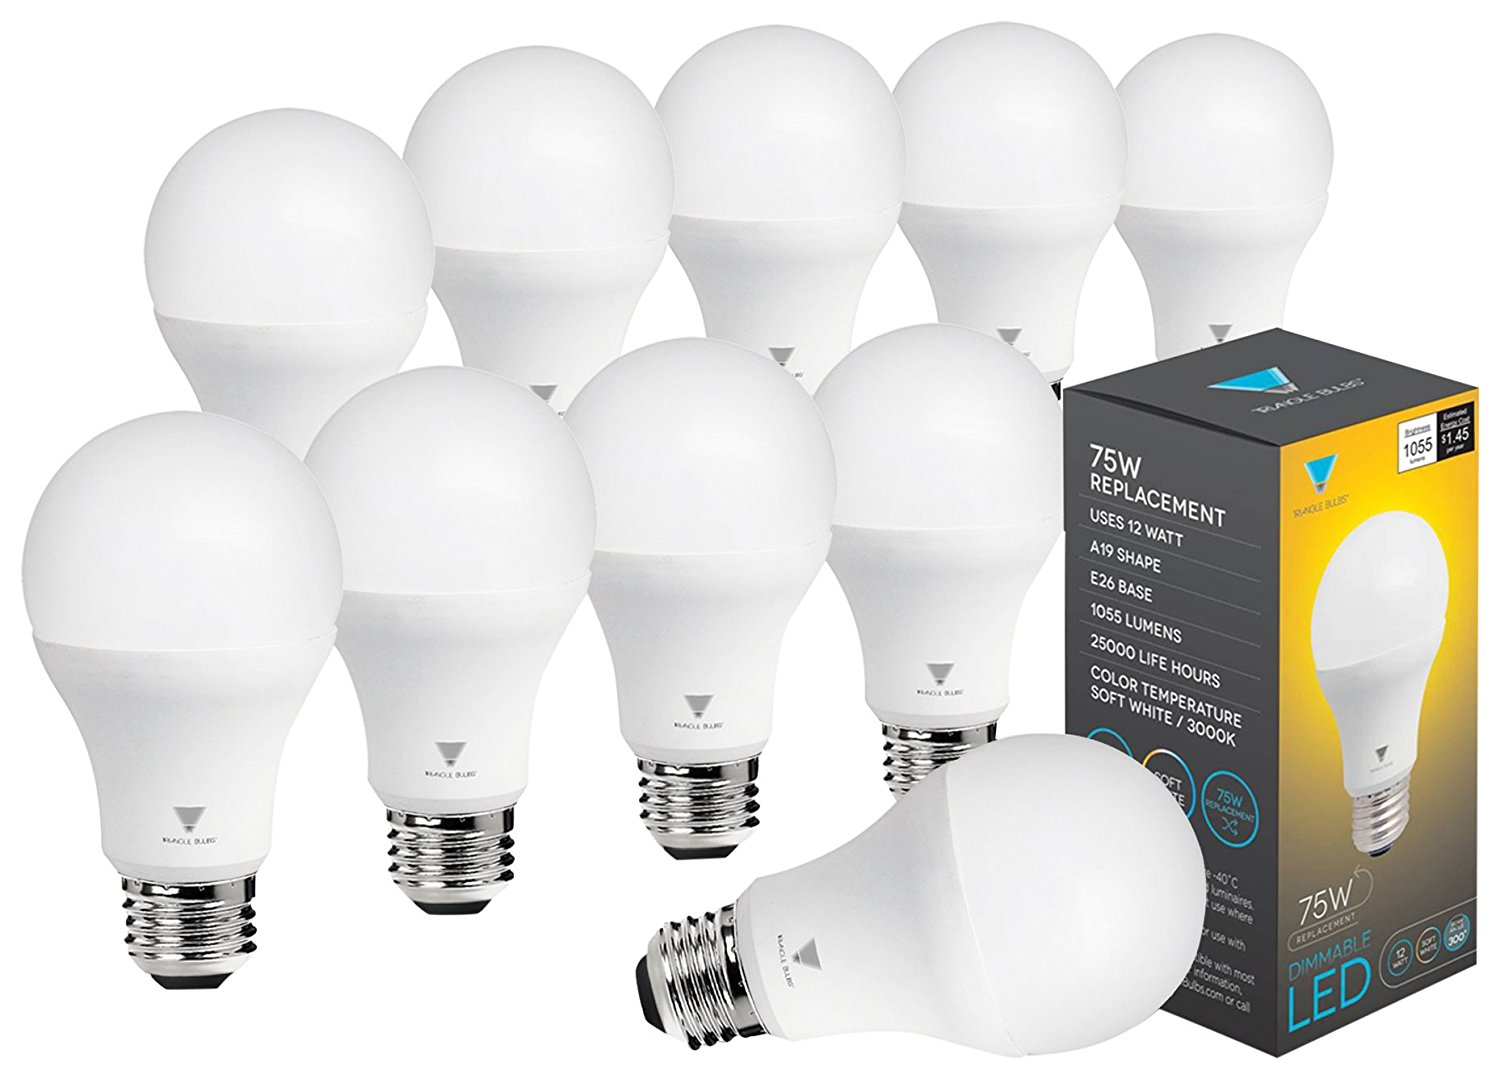 Triangle Bulbs (Pack of 10) LED Dimmable 12 Watt A19 LED Bulb, 1055 Lumens Soft White (3000K) 75 Watt Incandescent Light Bulb Replacement